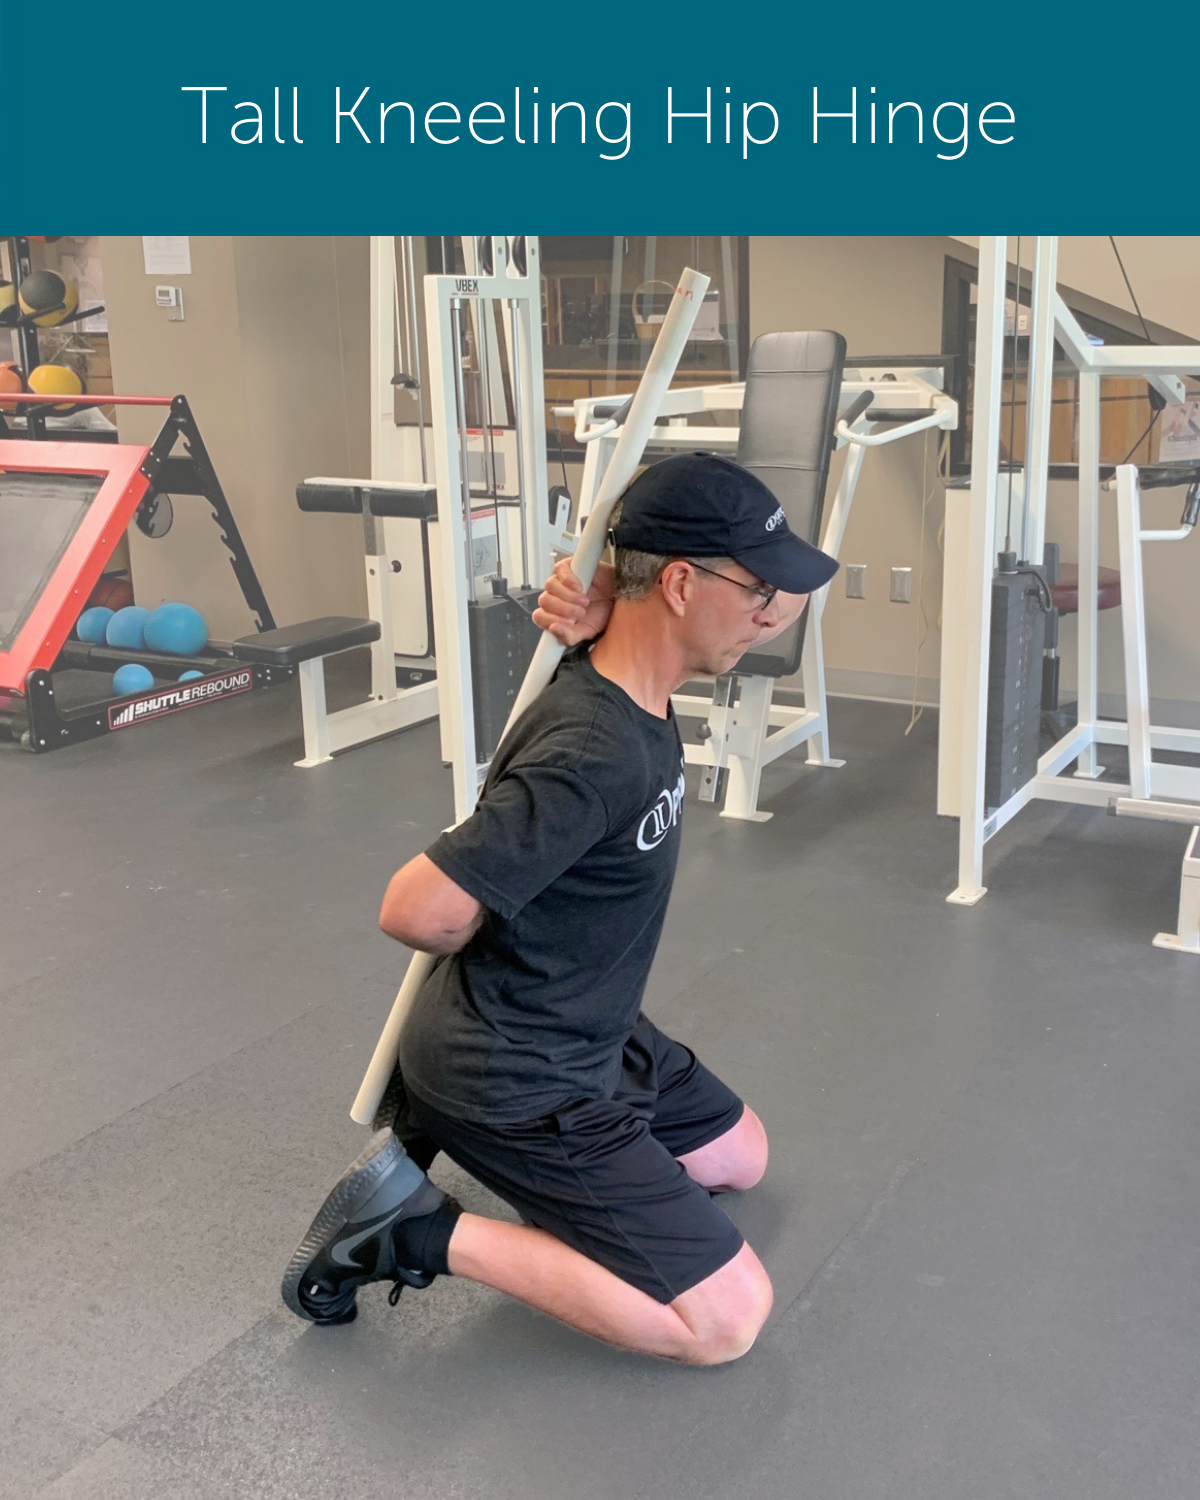 Orthopedic Institute physical therapist demonstrates how to achieve a neutral spine while in a tall kneeling position to avoid back pain when exercising.